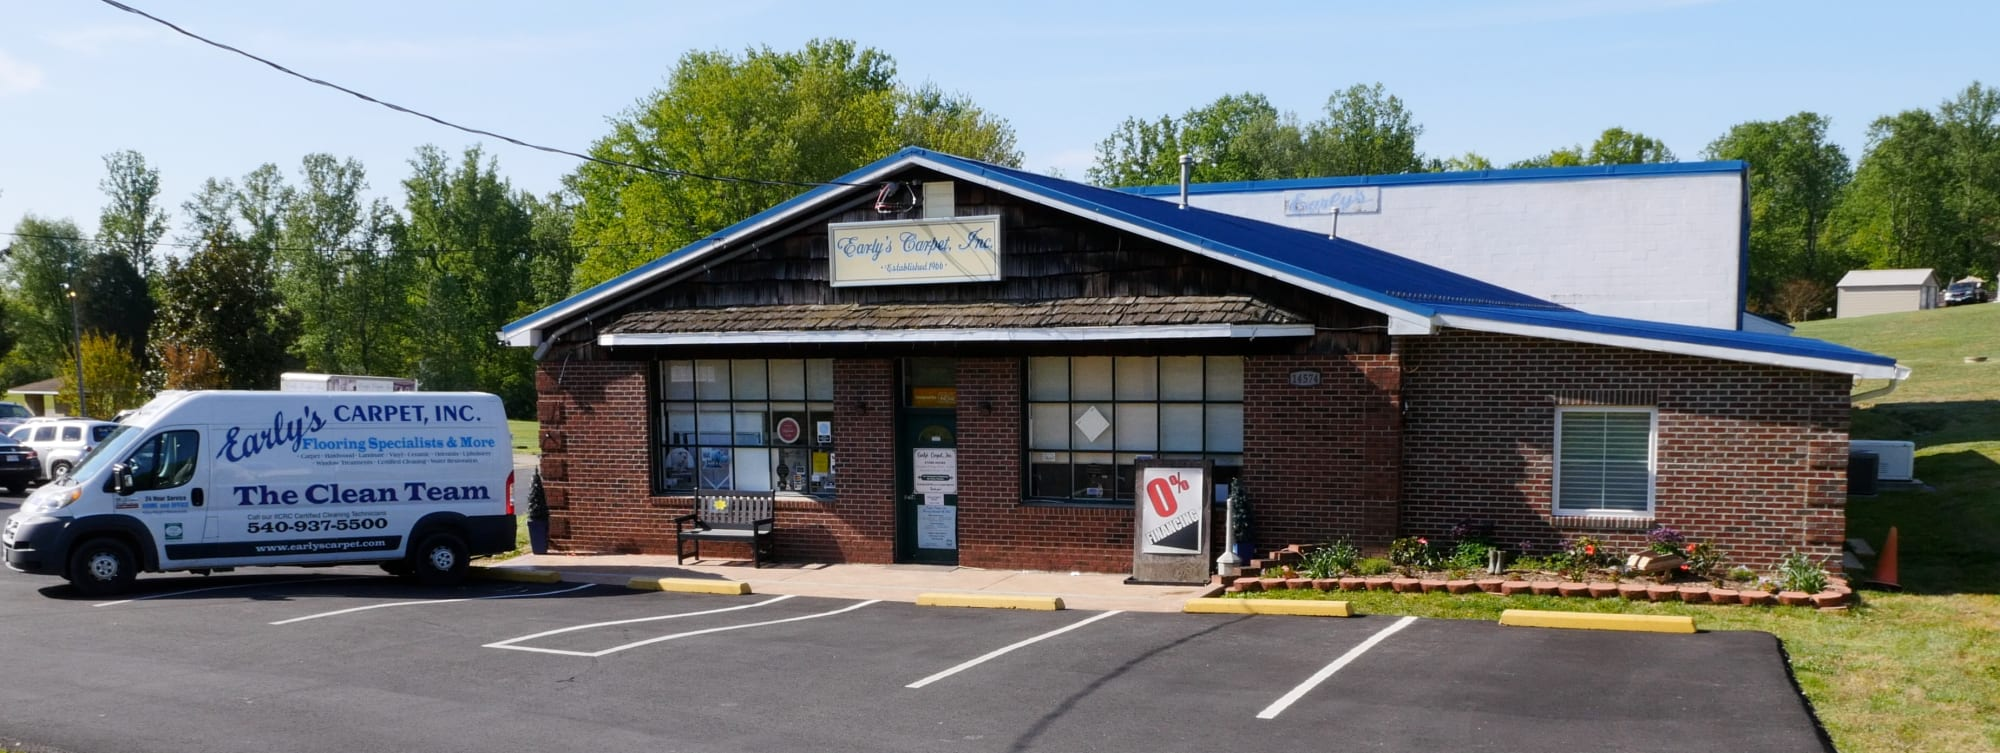 Early's Flooring Specialists & More - 14574 Lee Hwy Amissville, VA 20106